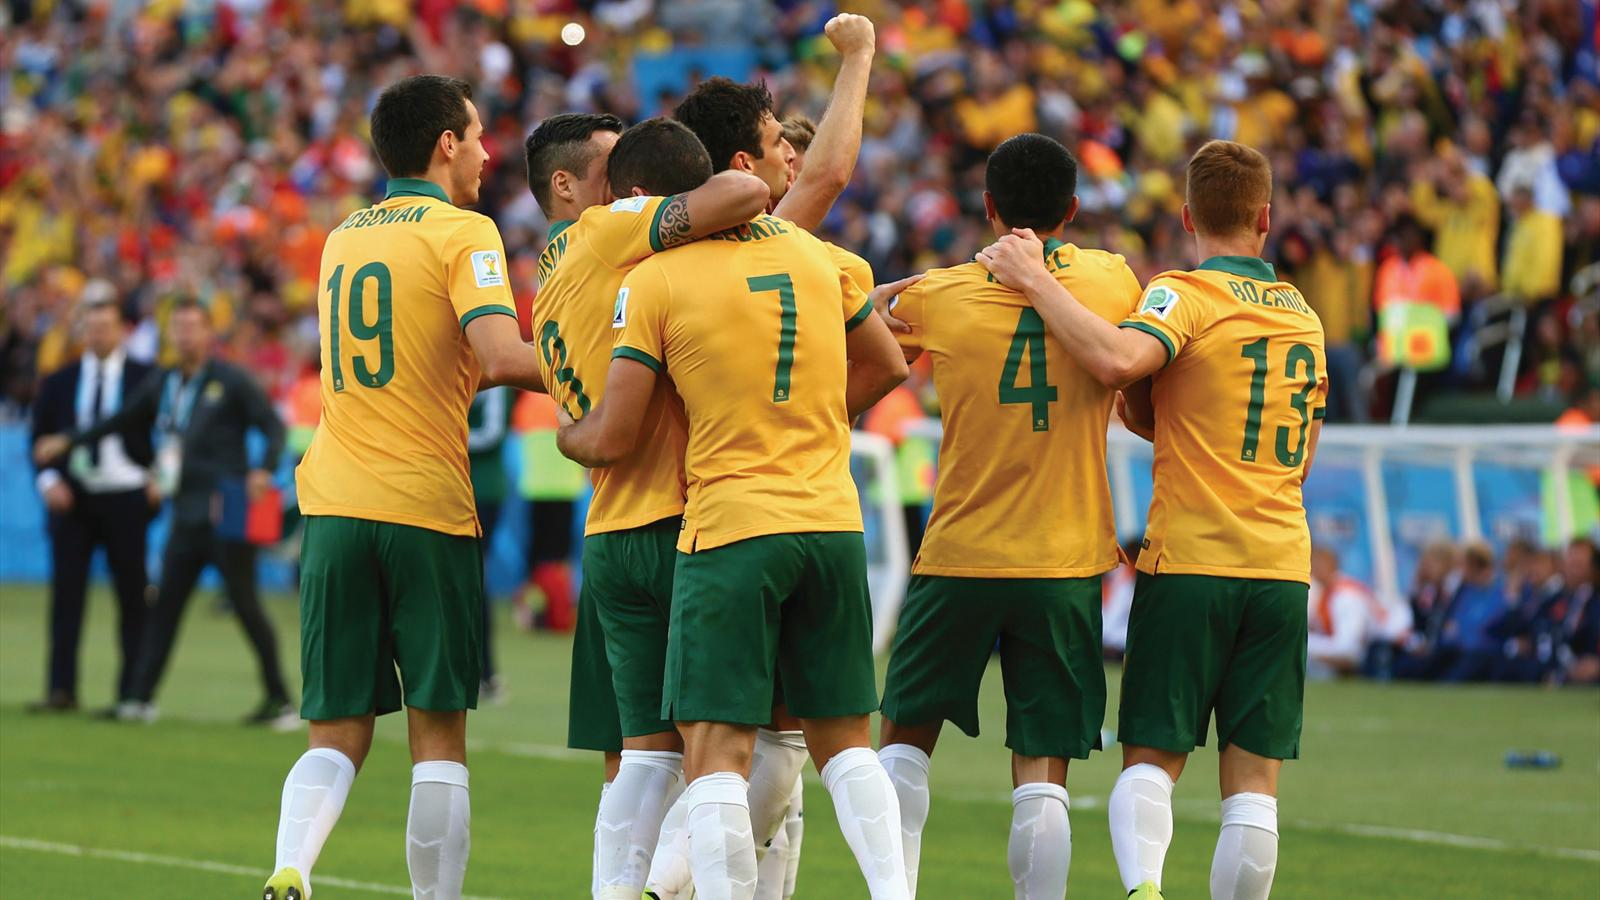 Mile Jedinak of Australia celebrates scoring his team's second goal with his teammates during the 2014 FIFA World Cup Brazil